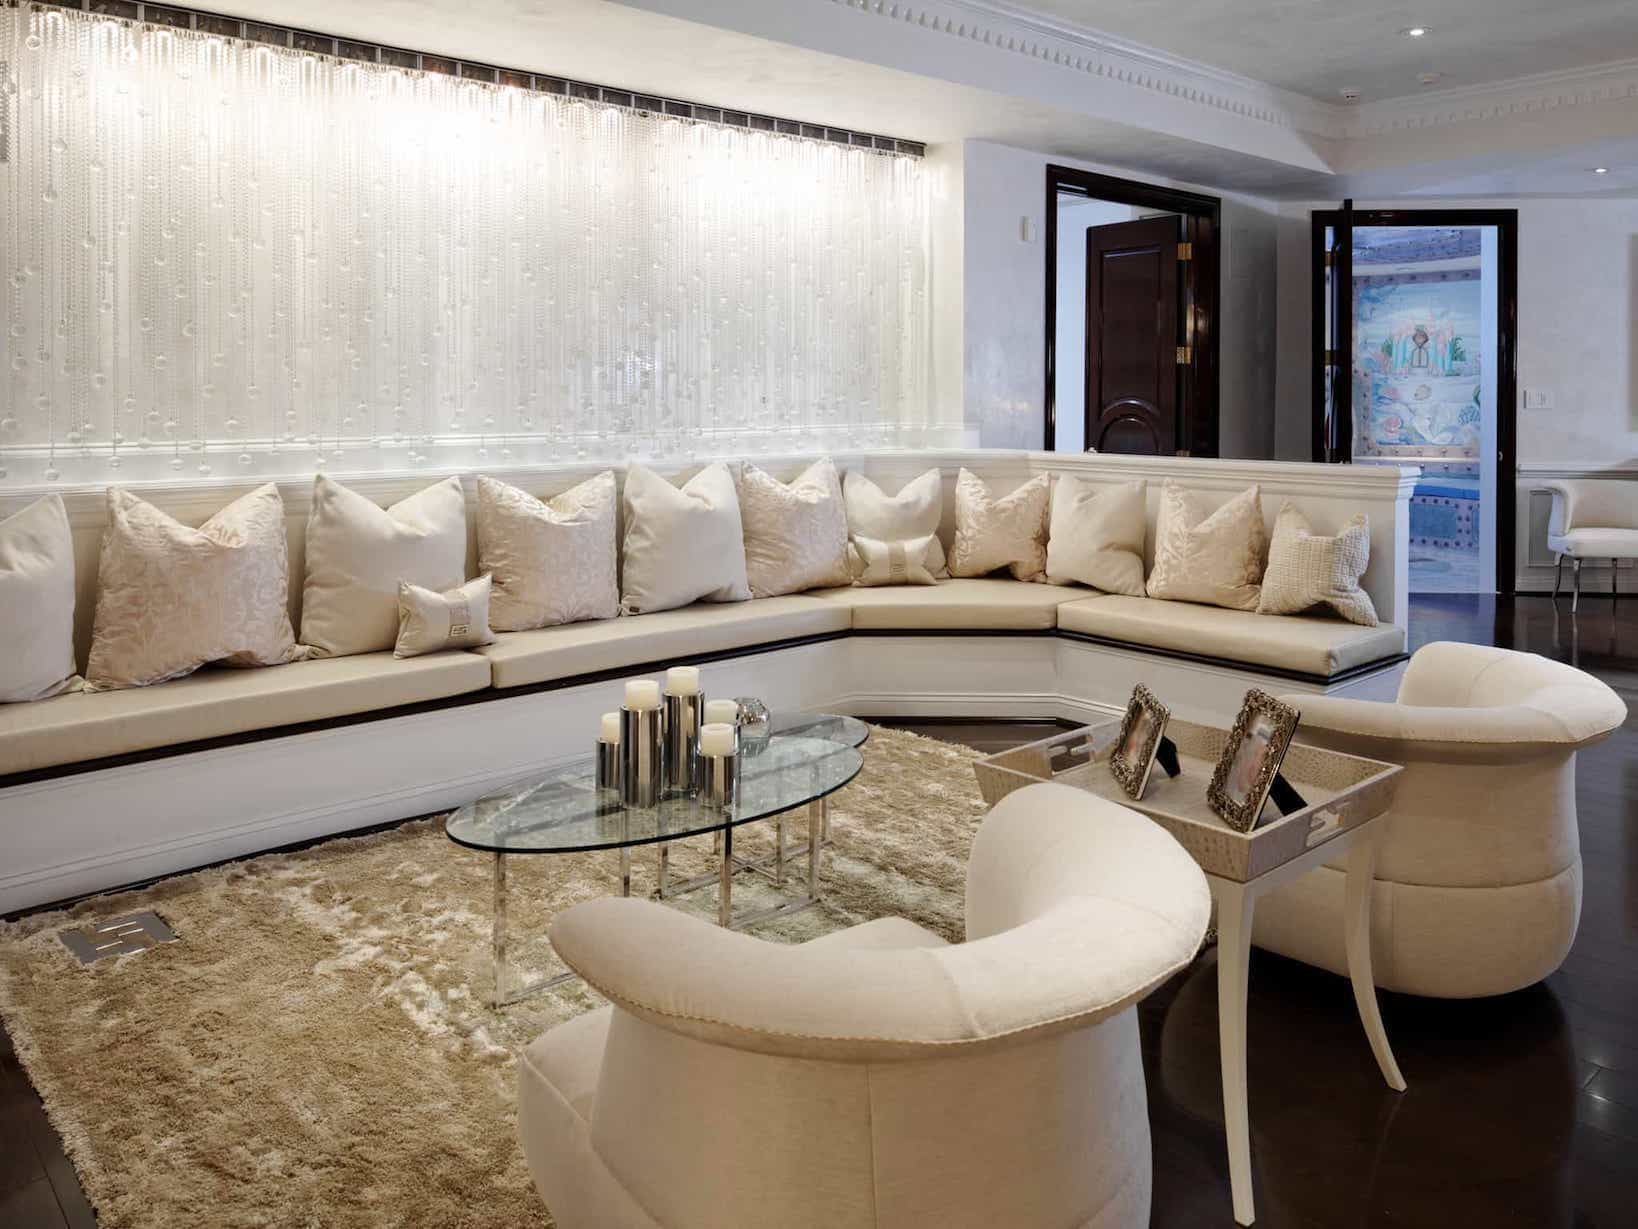 Luxury Shag Rug For Contemporary Sitting Room With Large Neutral Banquette (View 10 of 15)